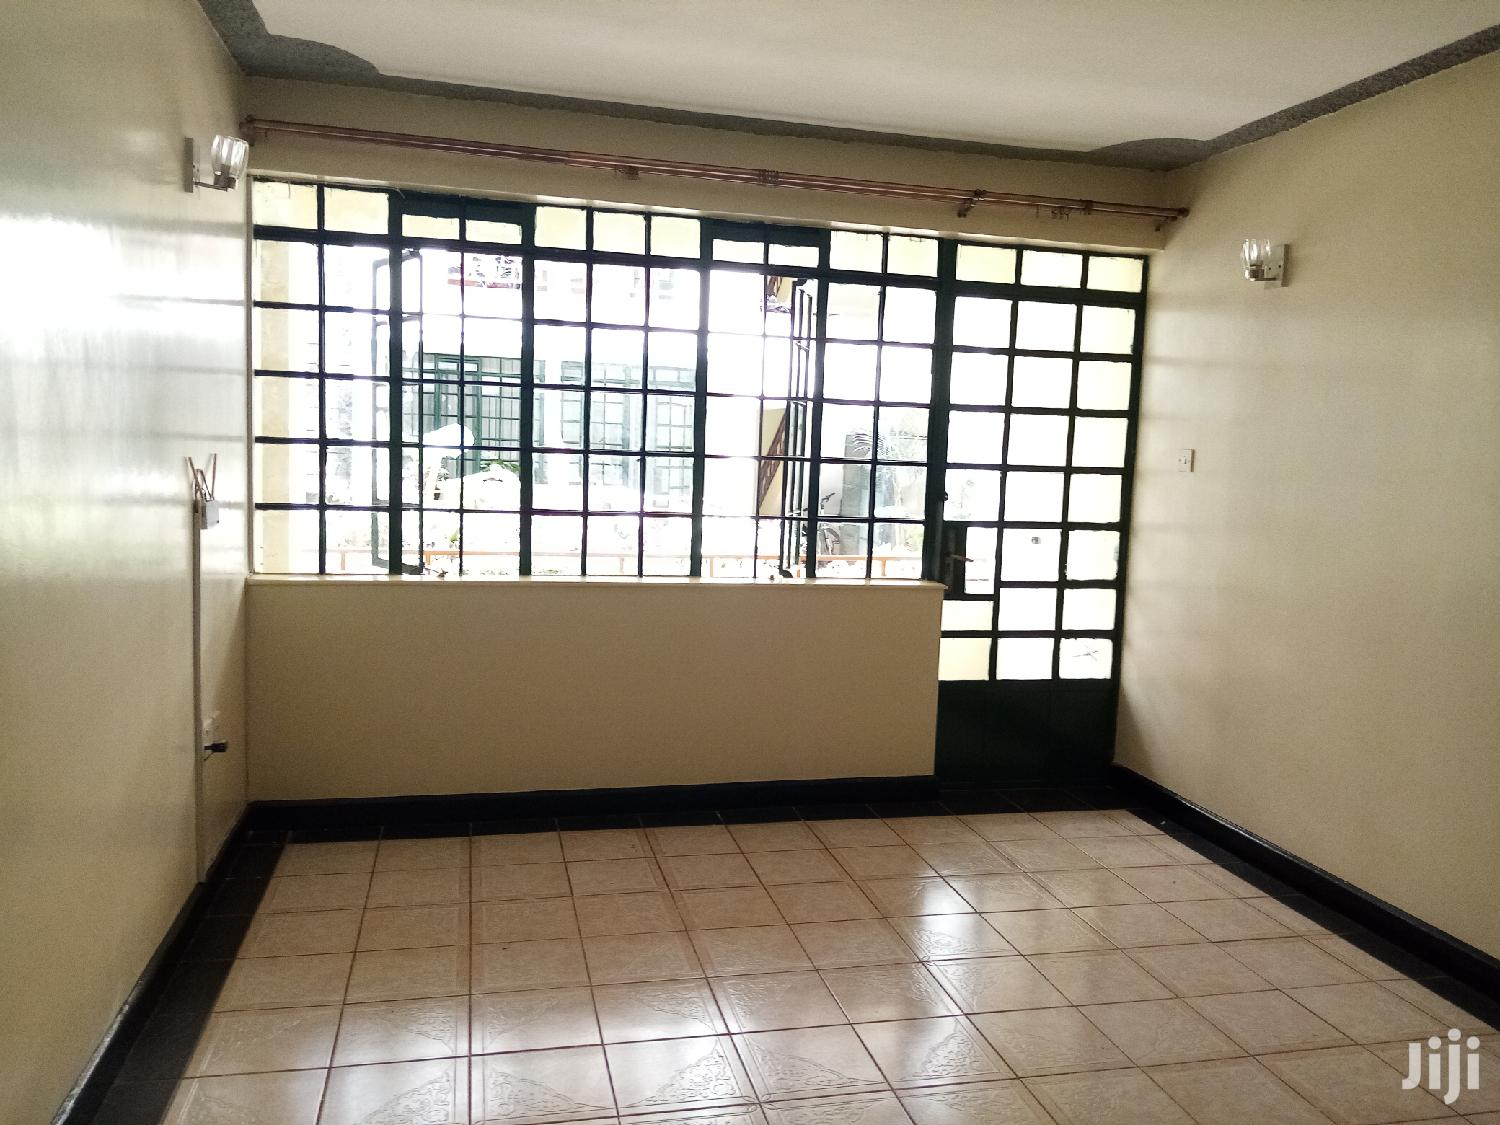 Property World, 1br Apartment With Borehole and Very Secure